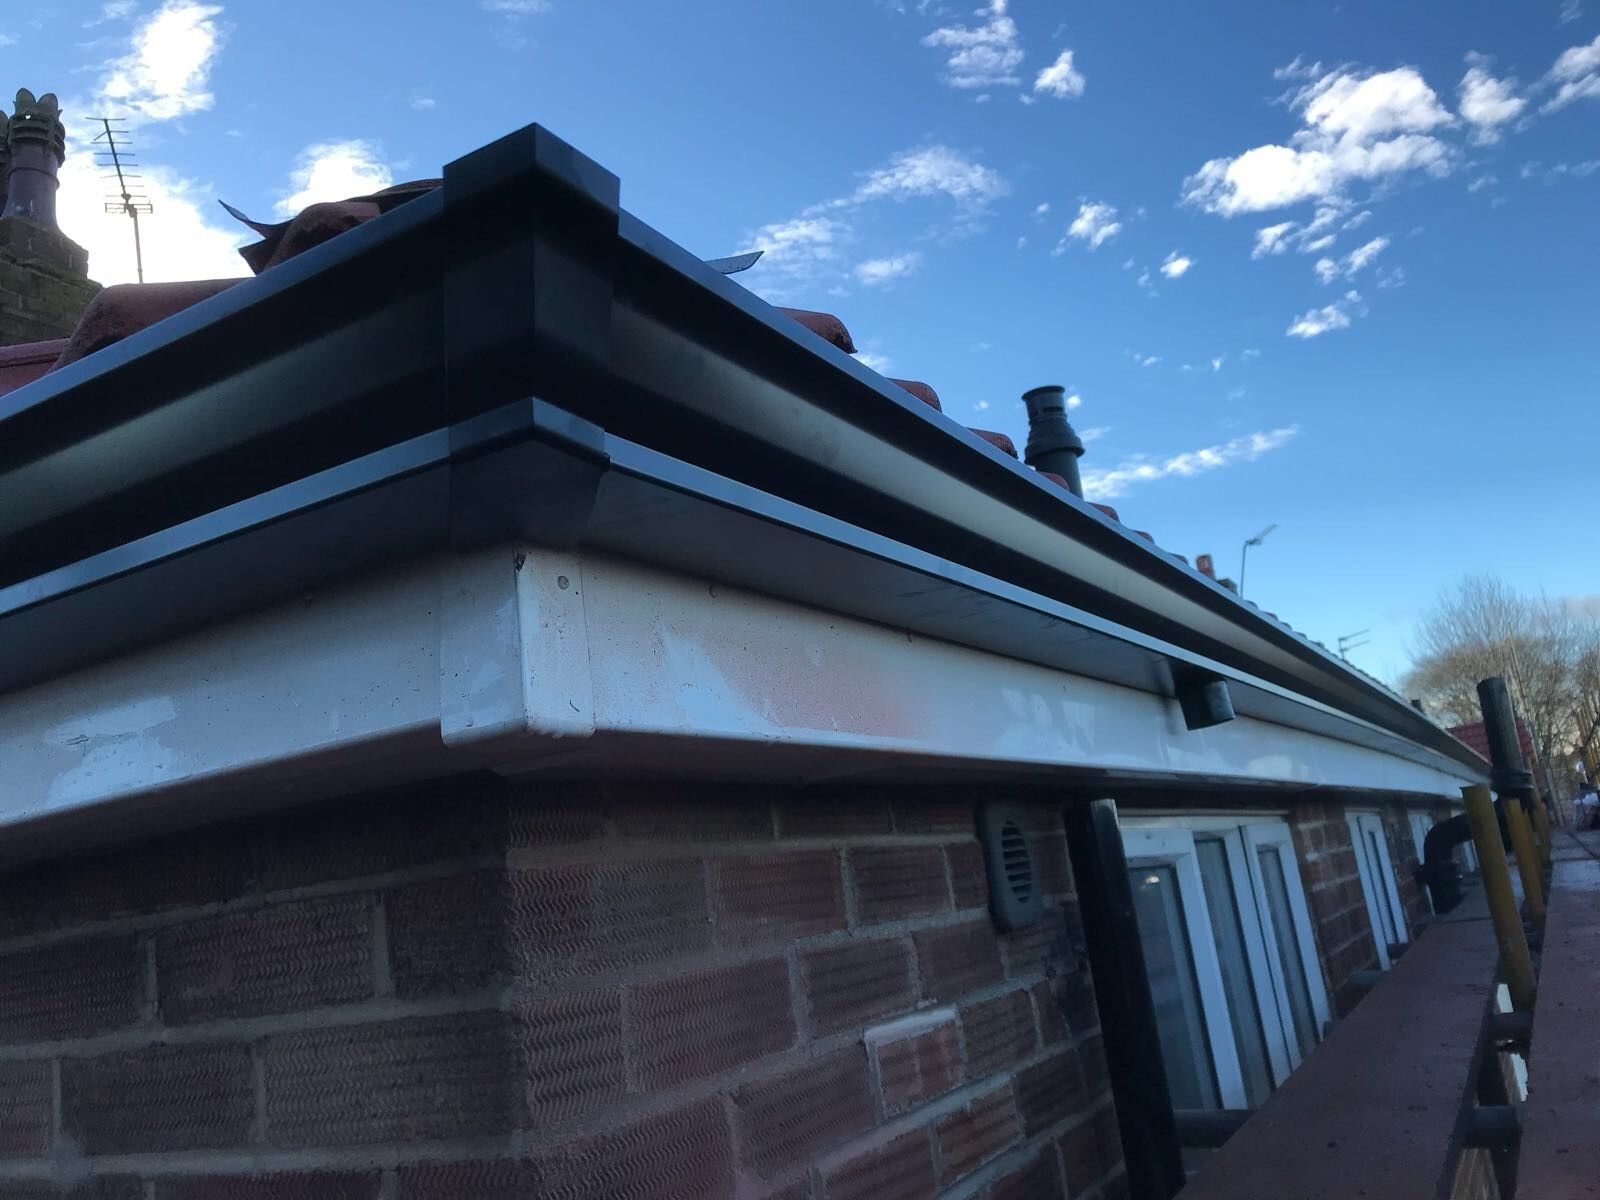 Black Seamless Aluminium Guttering In Long Continuous Lengths Fitted By Bridge Rainwater Solutions Seamless Rainwater Black Seamless